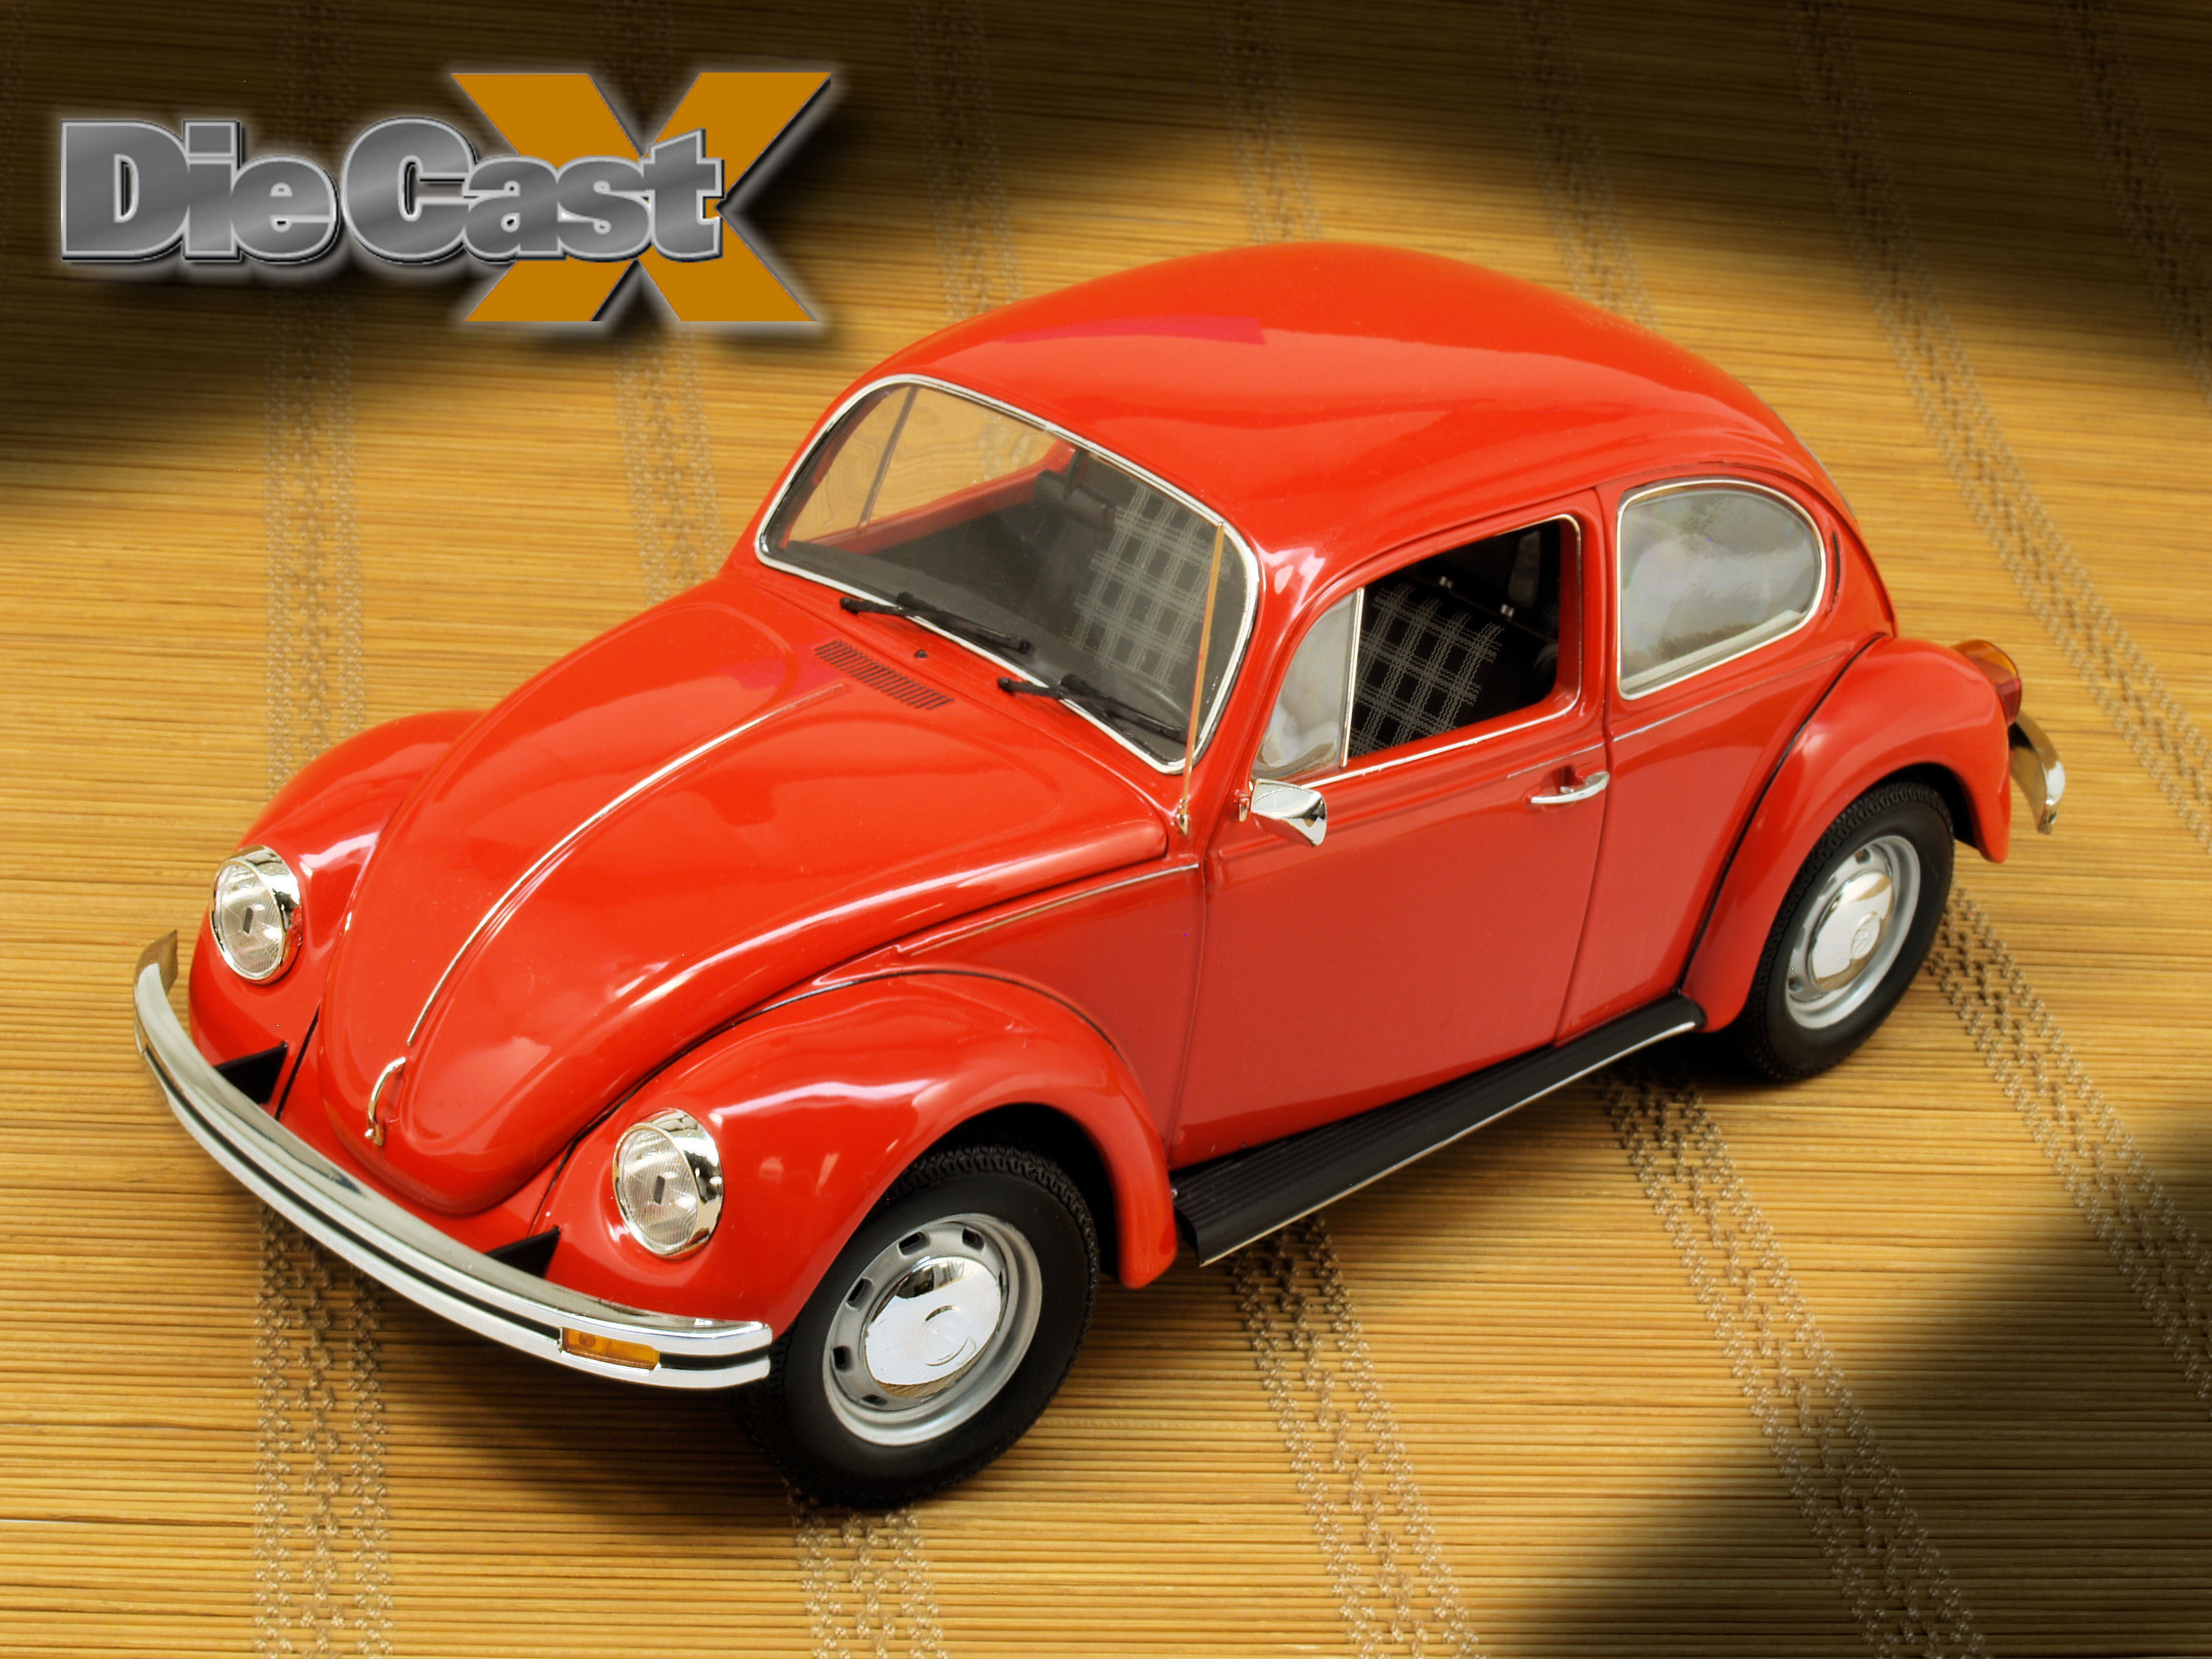 Minichamps 1:18 1983 VW Beetle: Humble is Good